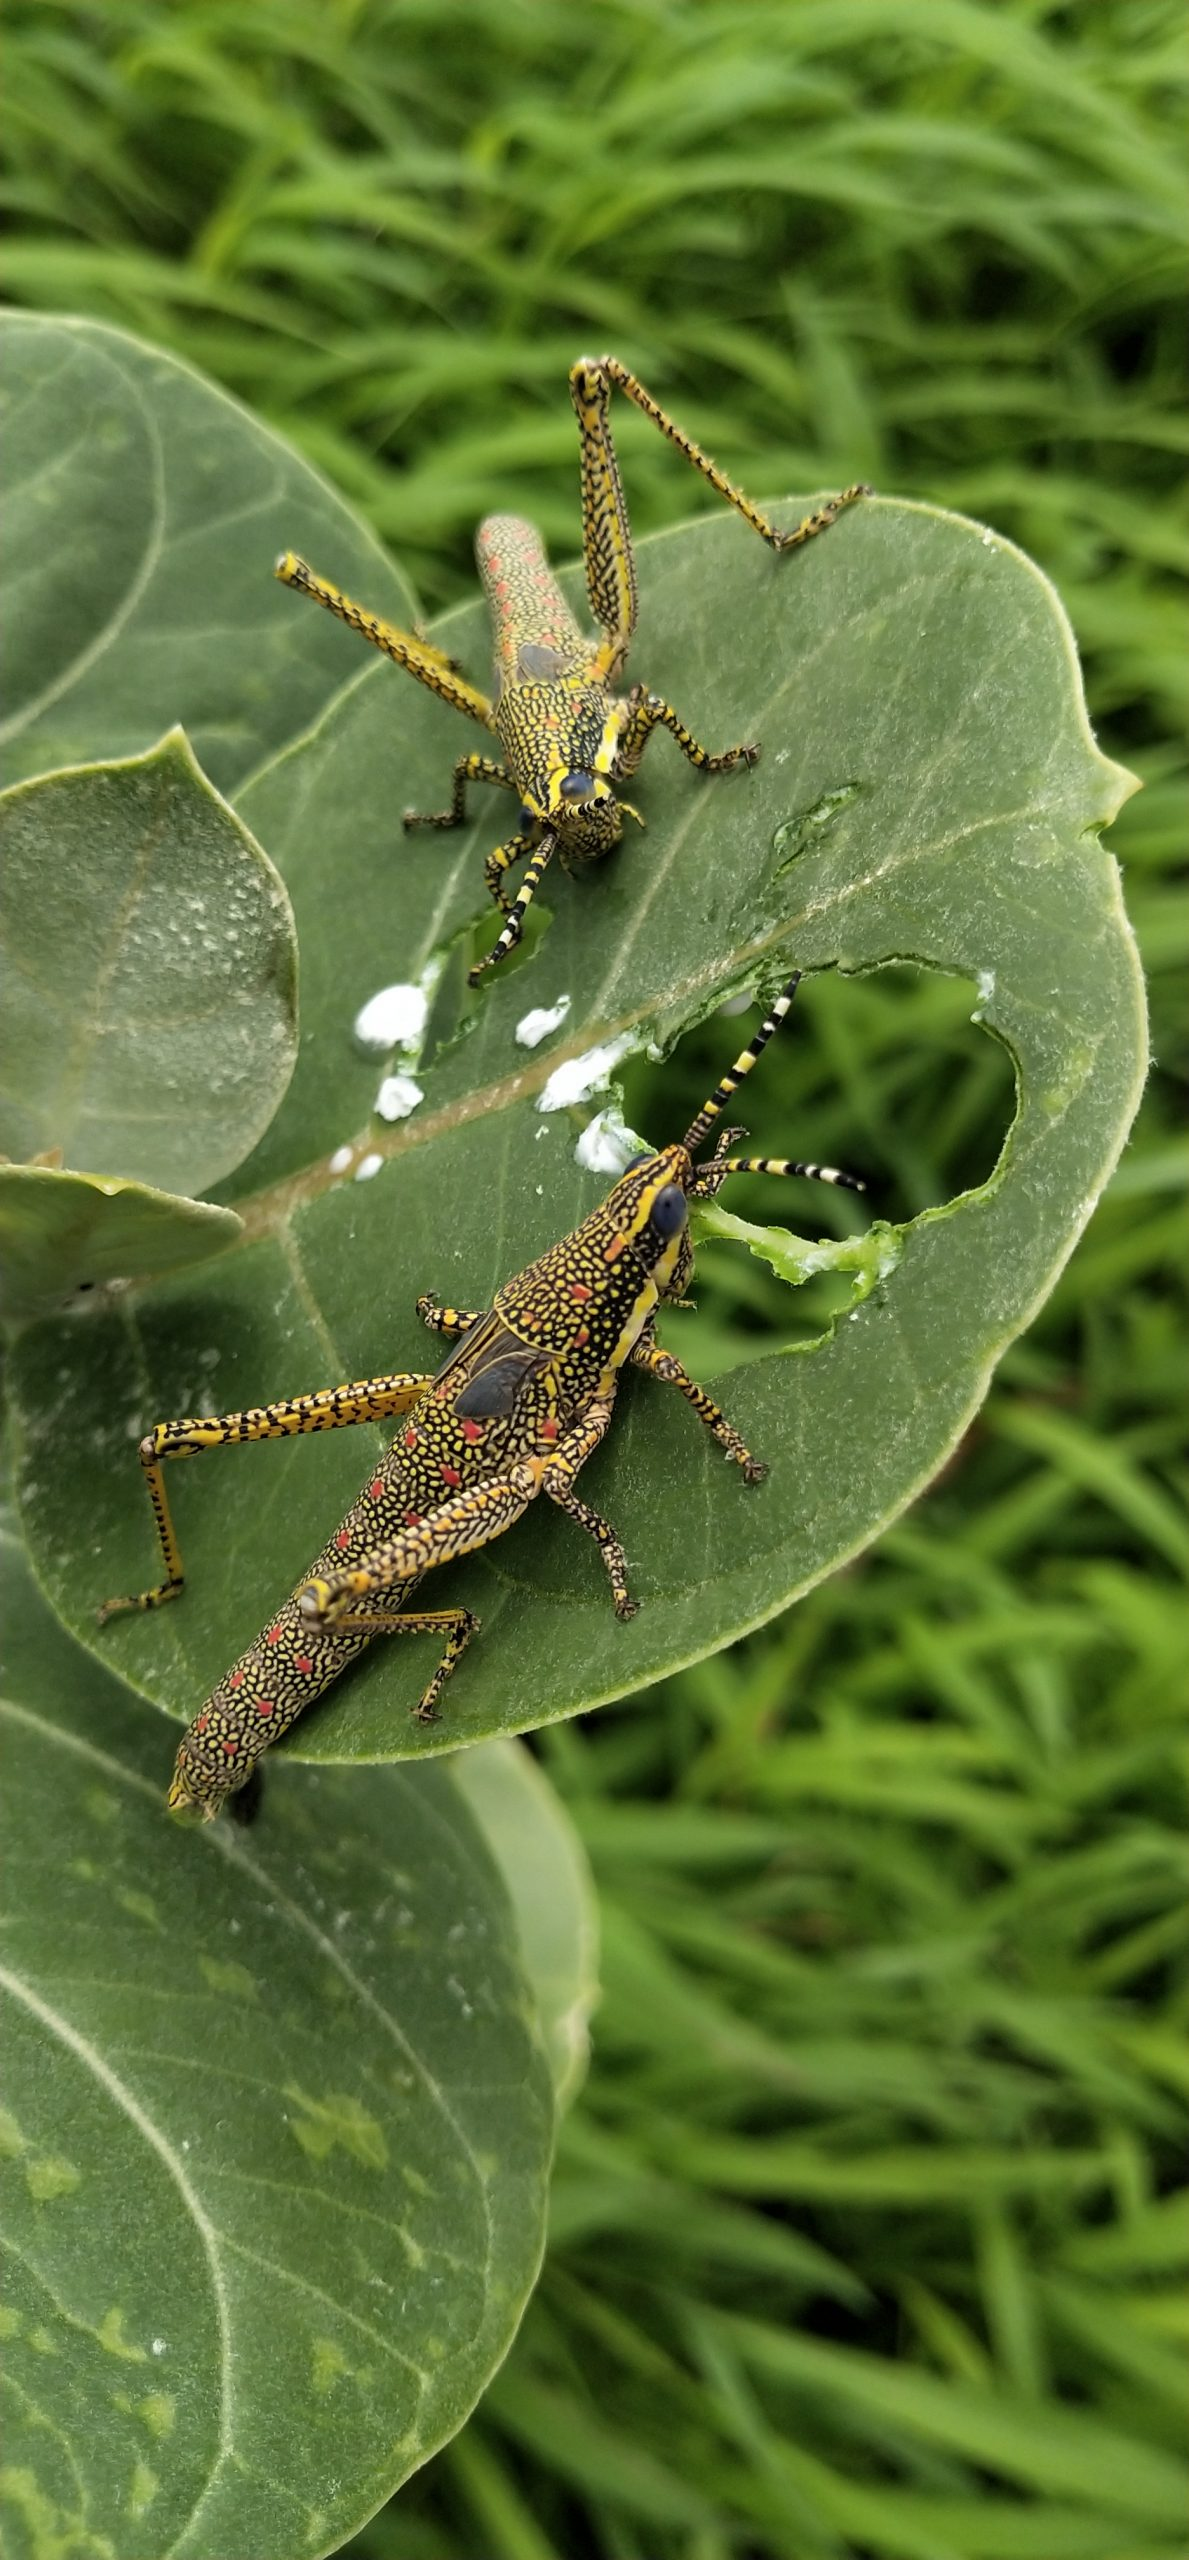 Grasshoppers on a leaf